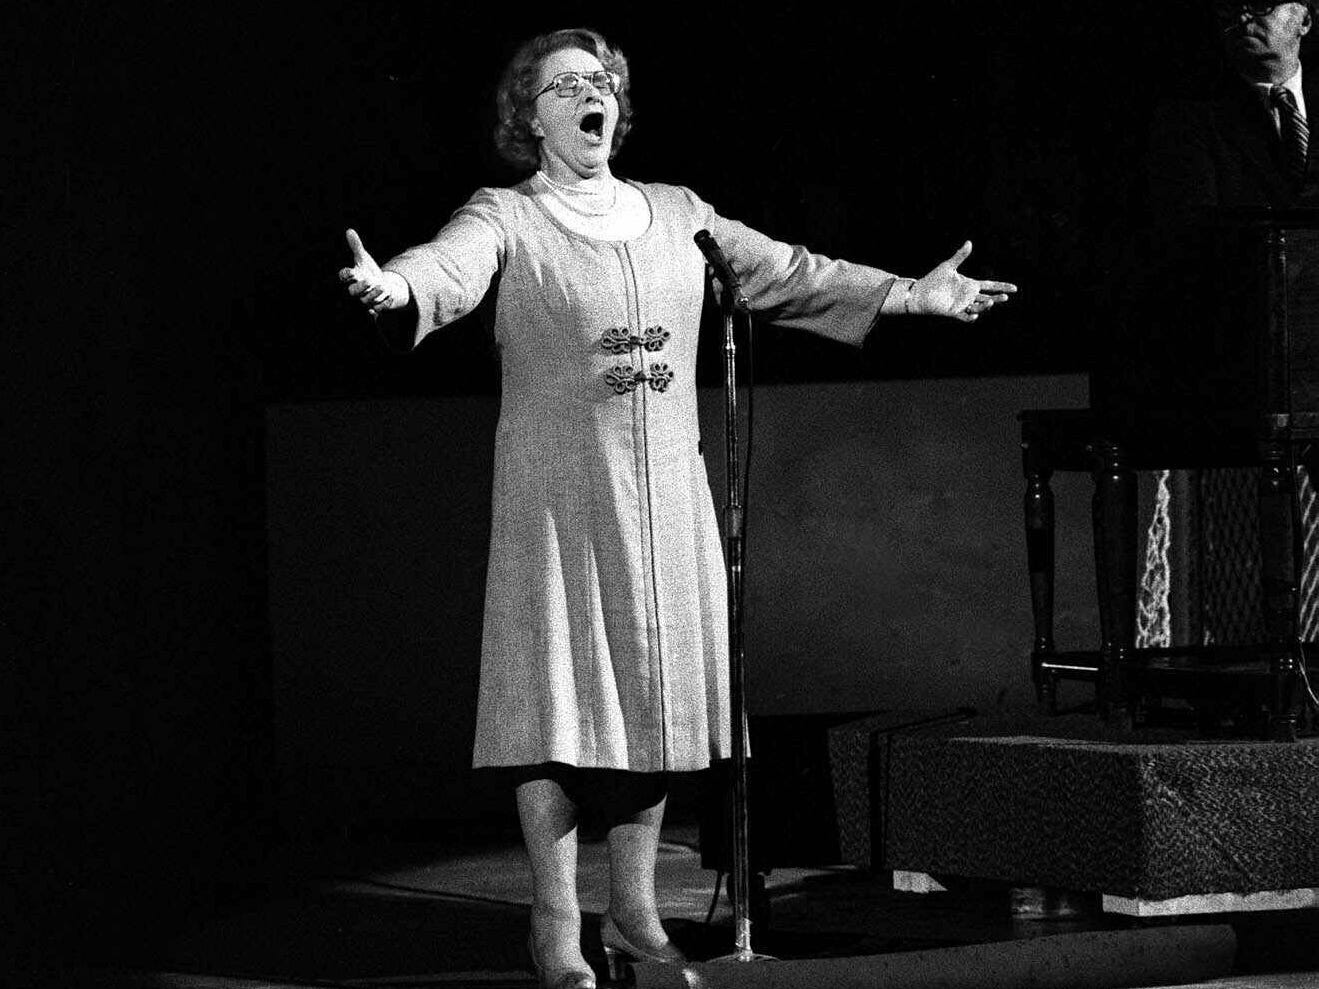 Who was Kate Smith and why is she suddenly a pariah for recording racist songs decades ago?